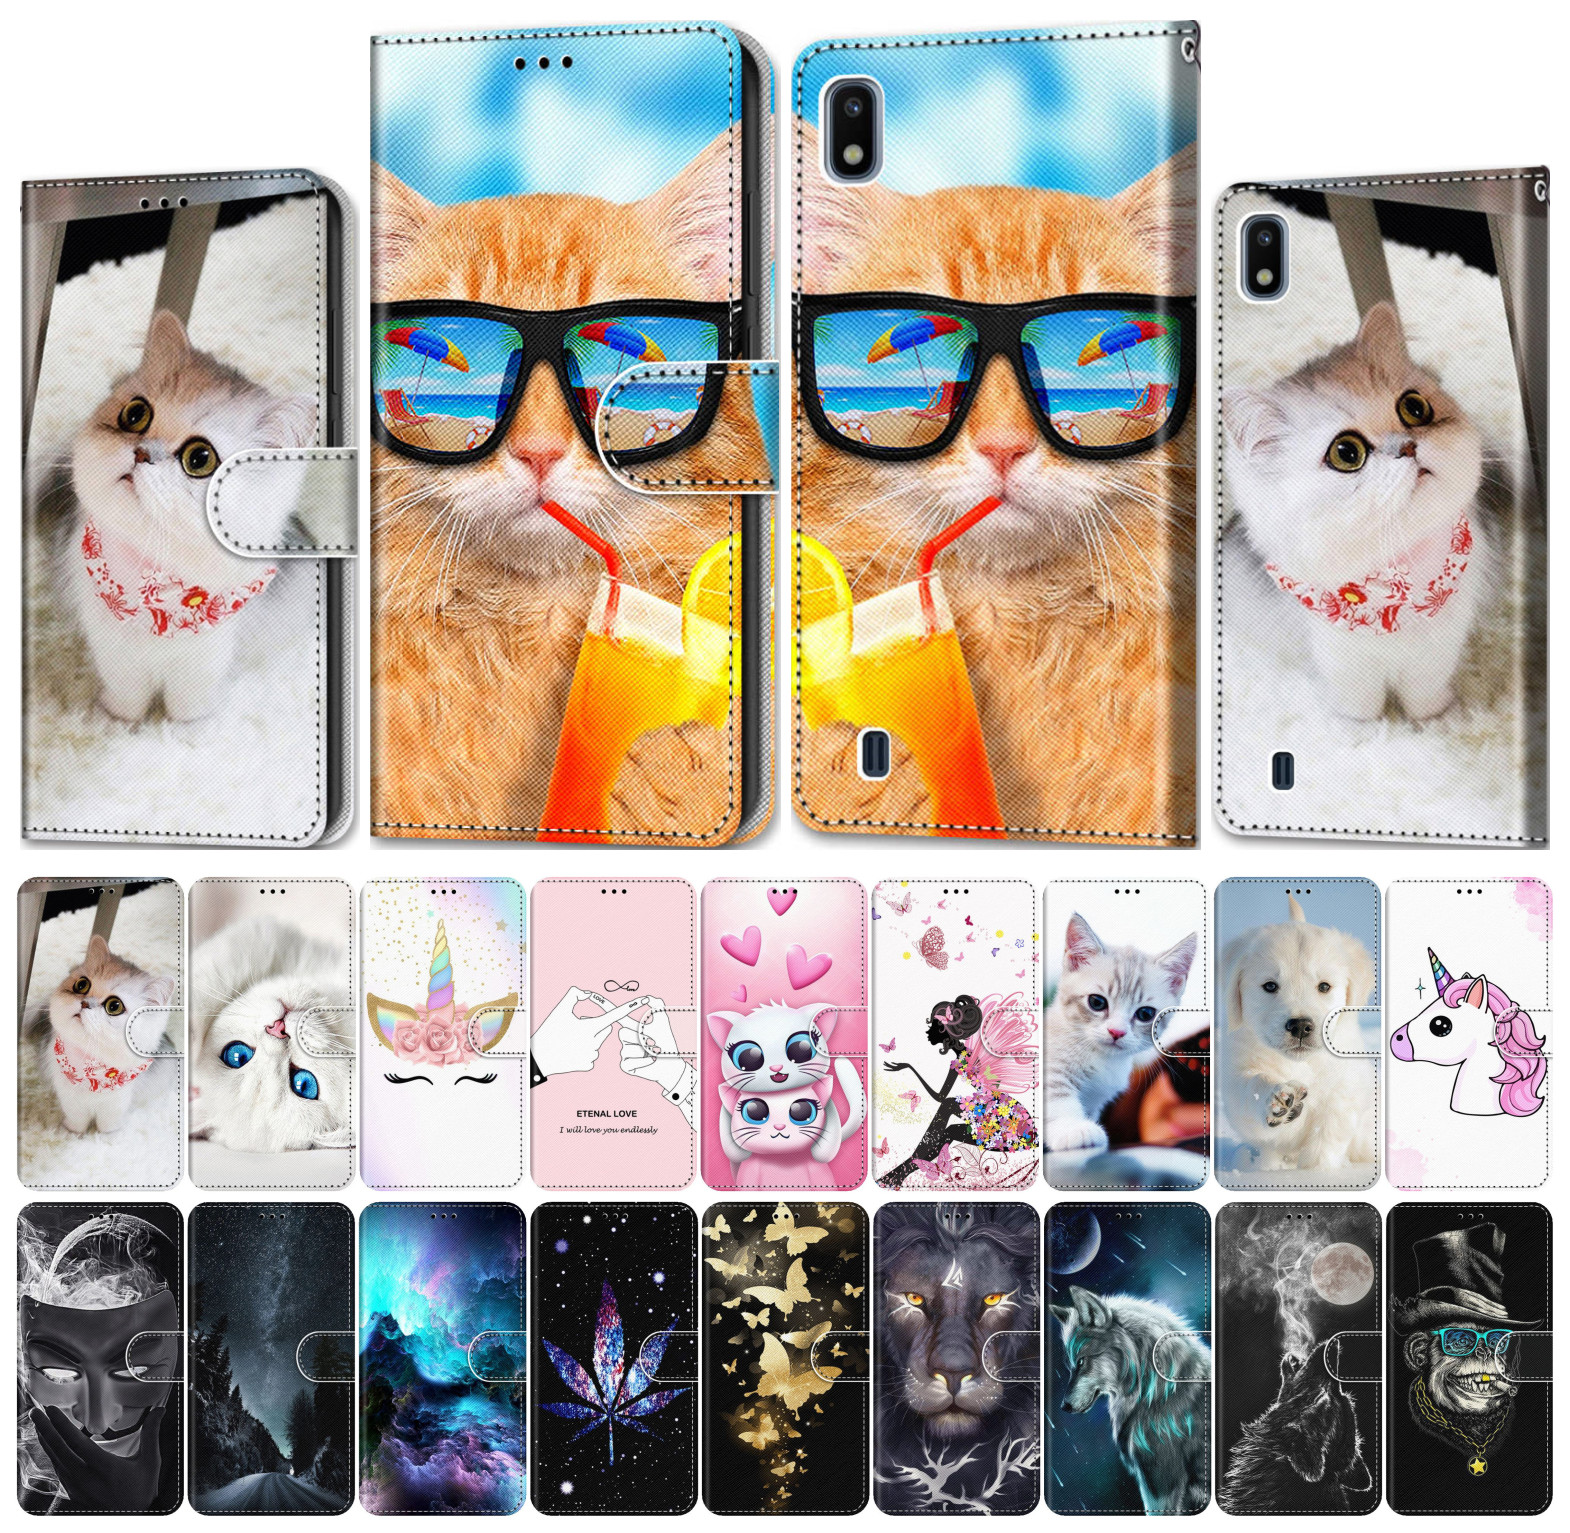 For Case Samsung Galaxy A50 A500 A510 A520 A5 2015 2016 2017 Phone Wallet Leather Cover Phone Case Tiger Wolf Lion Cat Dog V08F